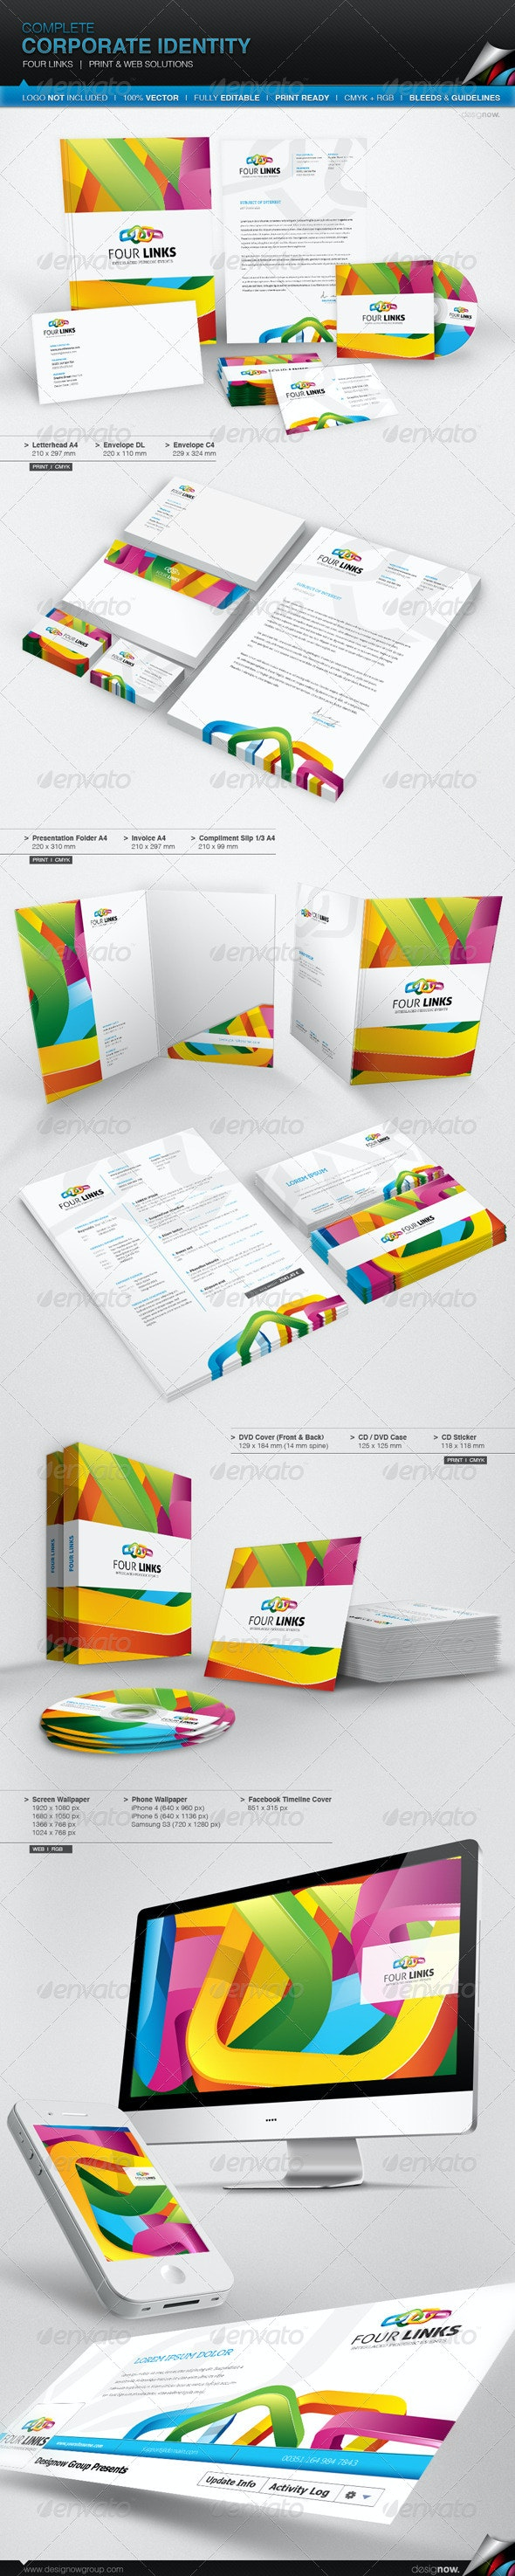 Corporate Identity - Four Links - Stationery Print Templates